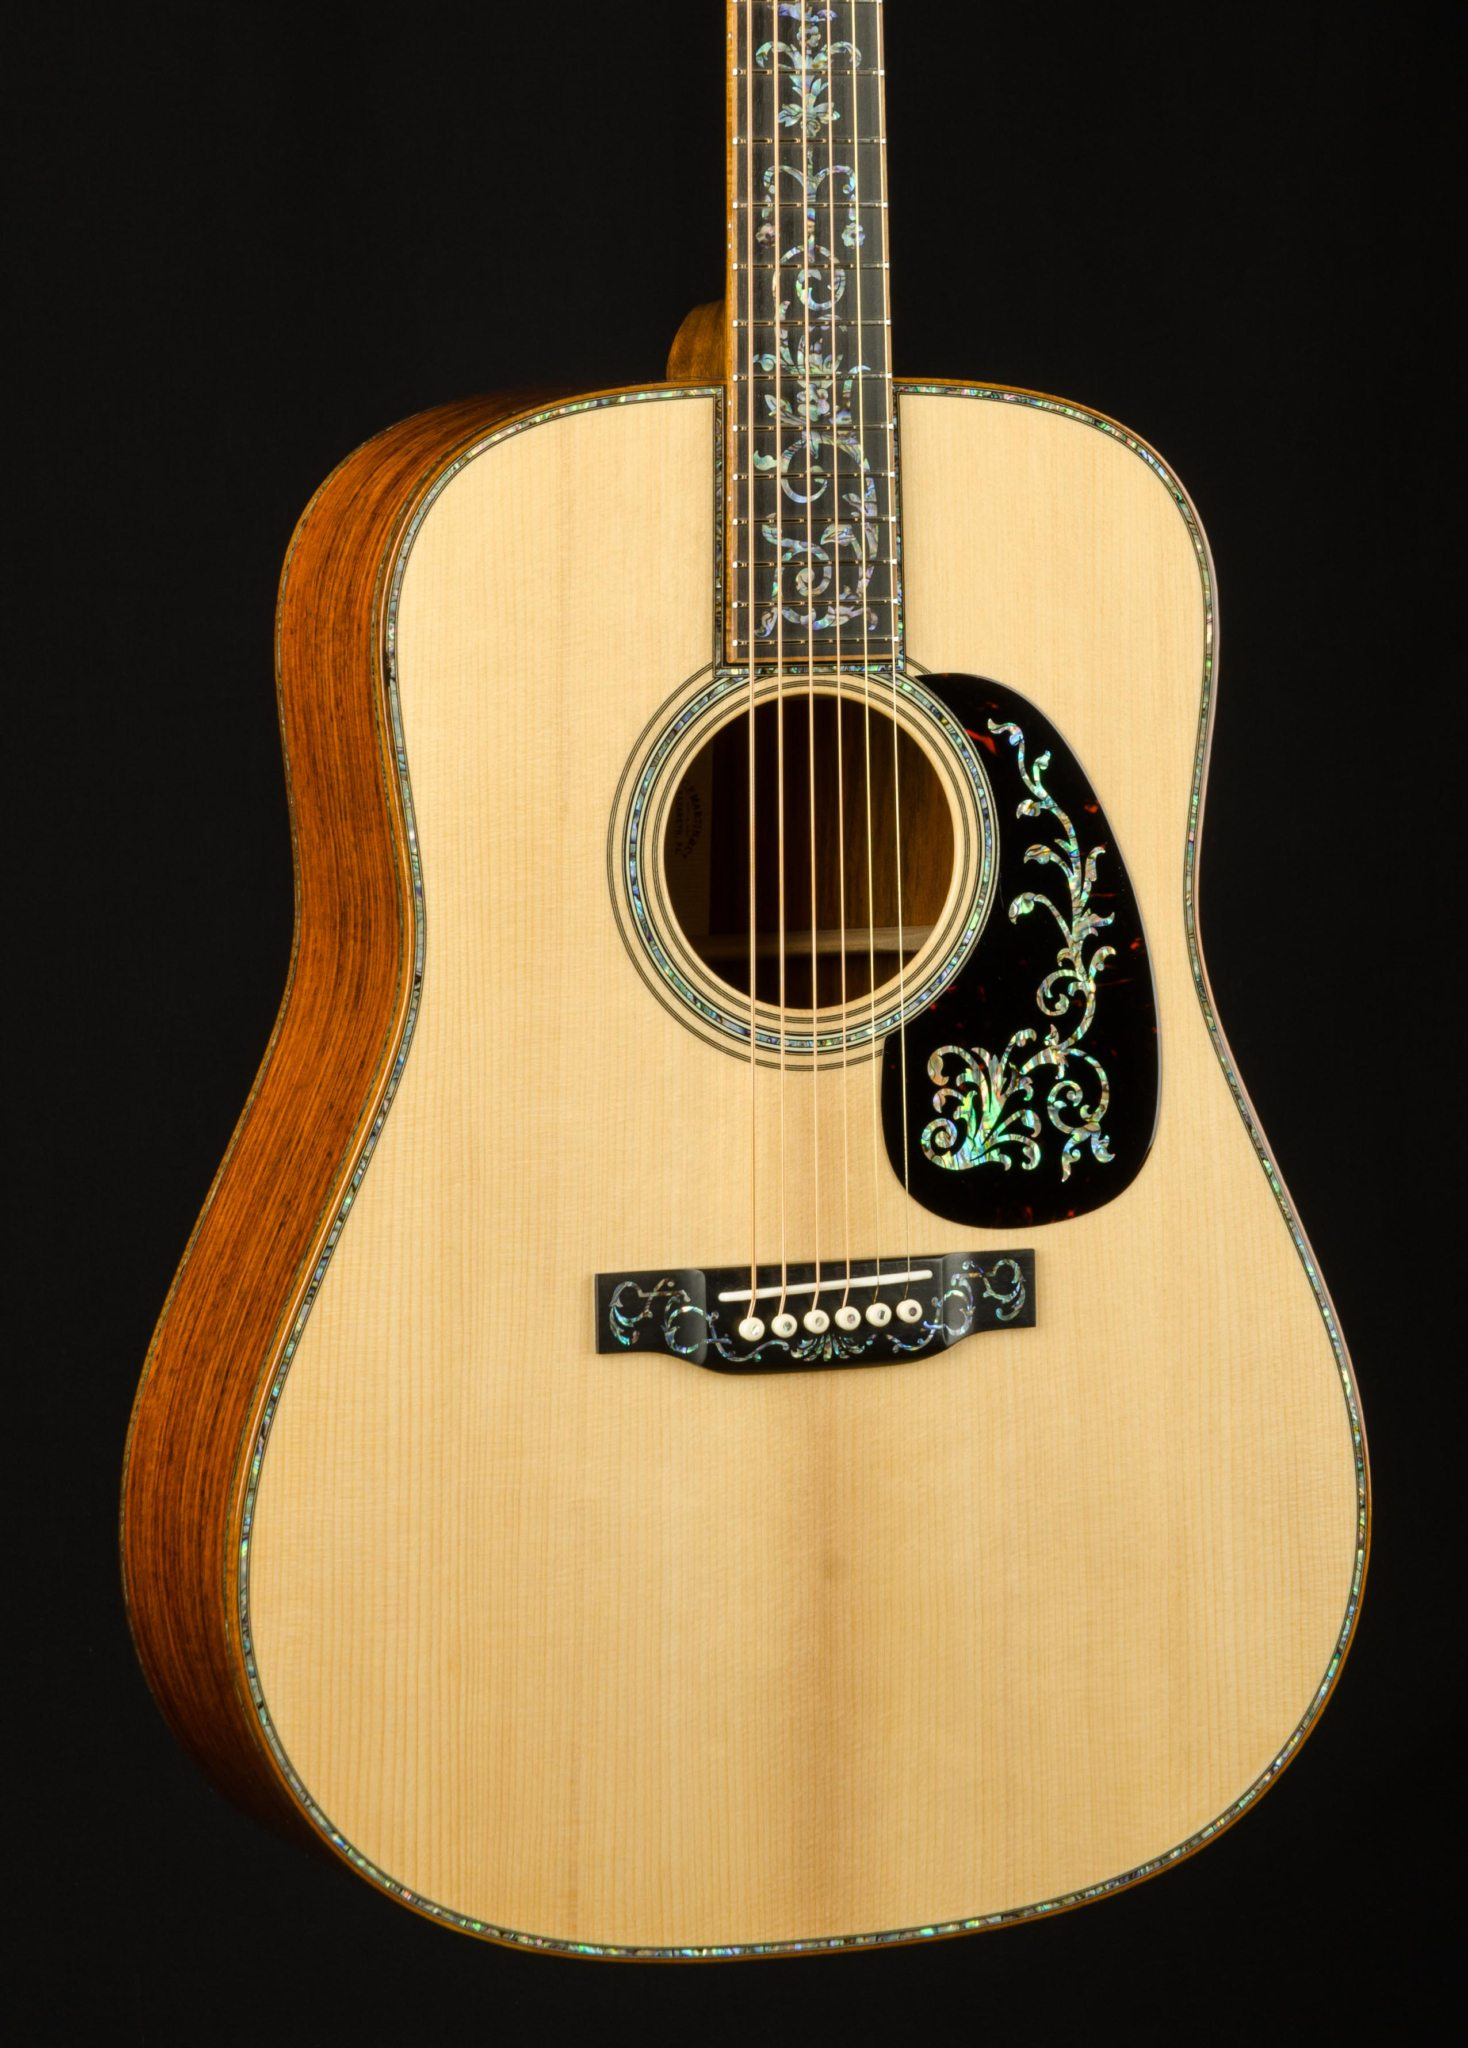 martin d 45 custom tree of life cocobolo and adirondack vts with paua pearl down home guitars. Black Bedroom Furniture Sets. Home Design Ideas